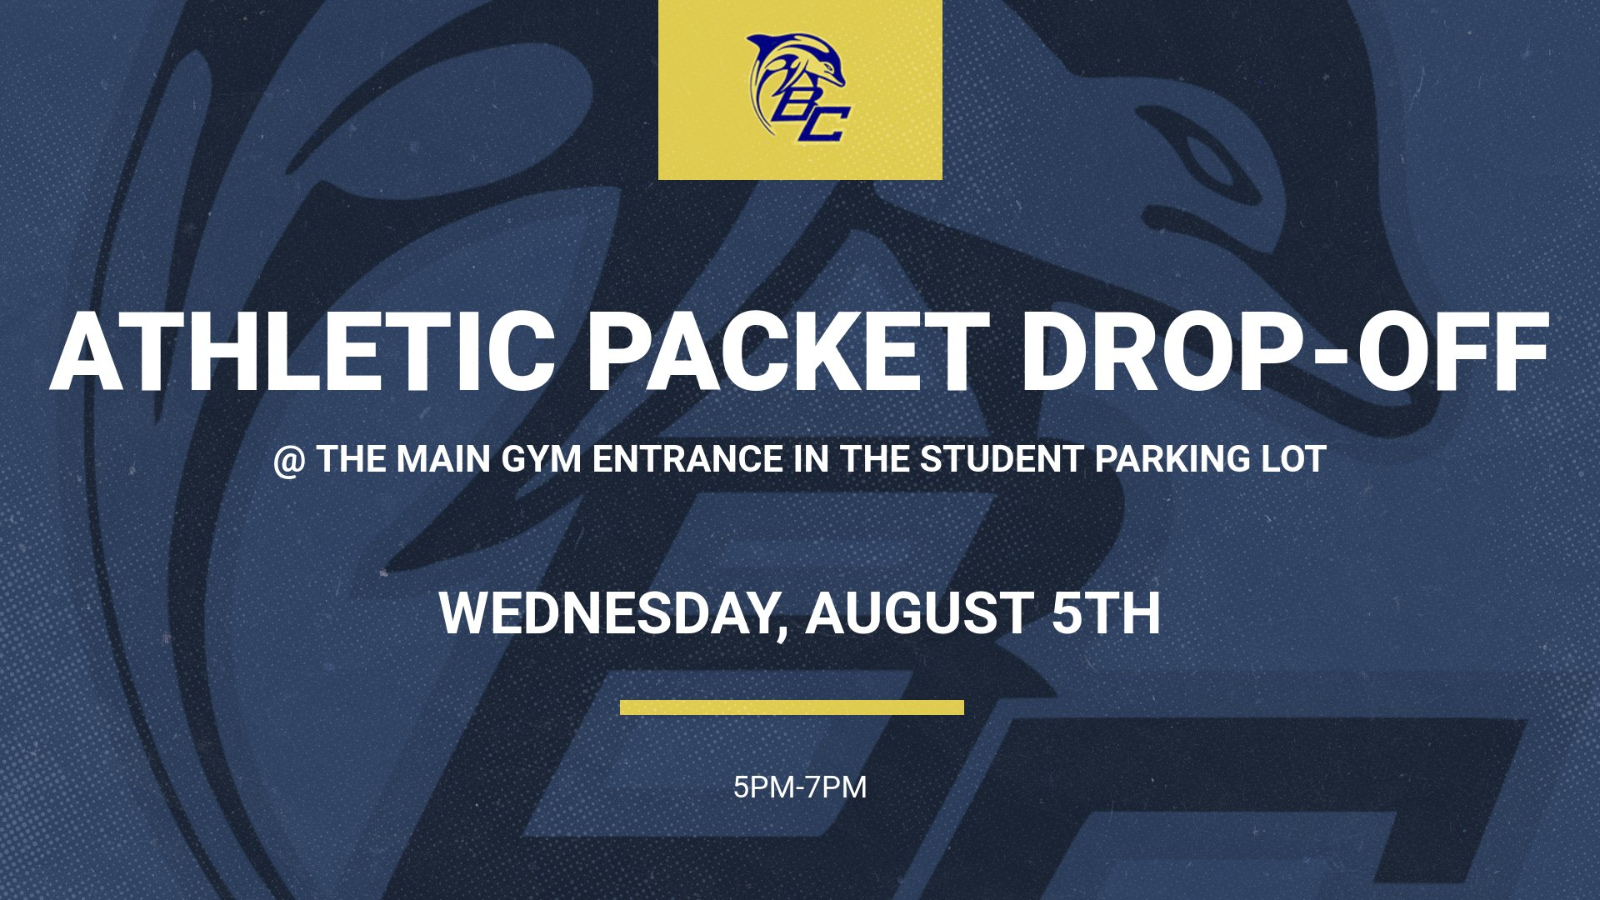 Athletic Packet Drop-Off Wednesday Aug. 5th